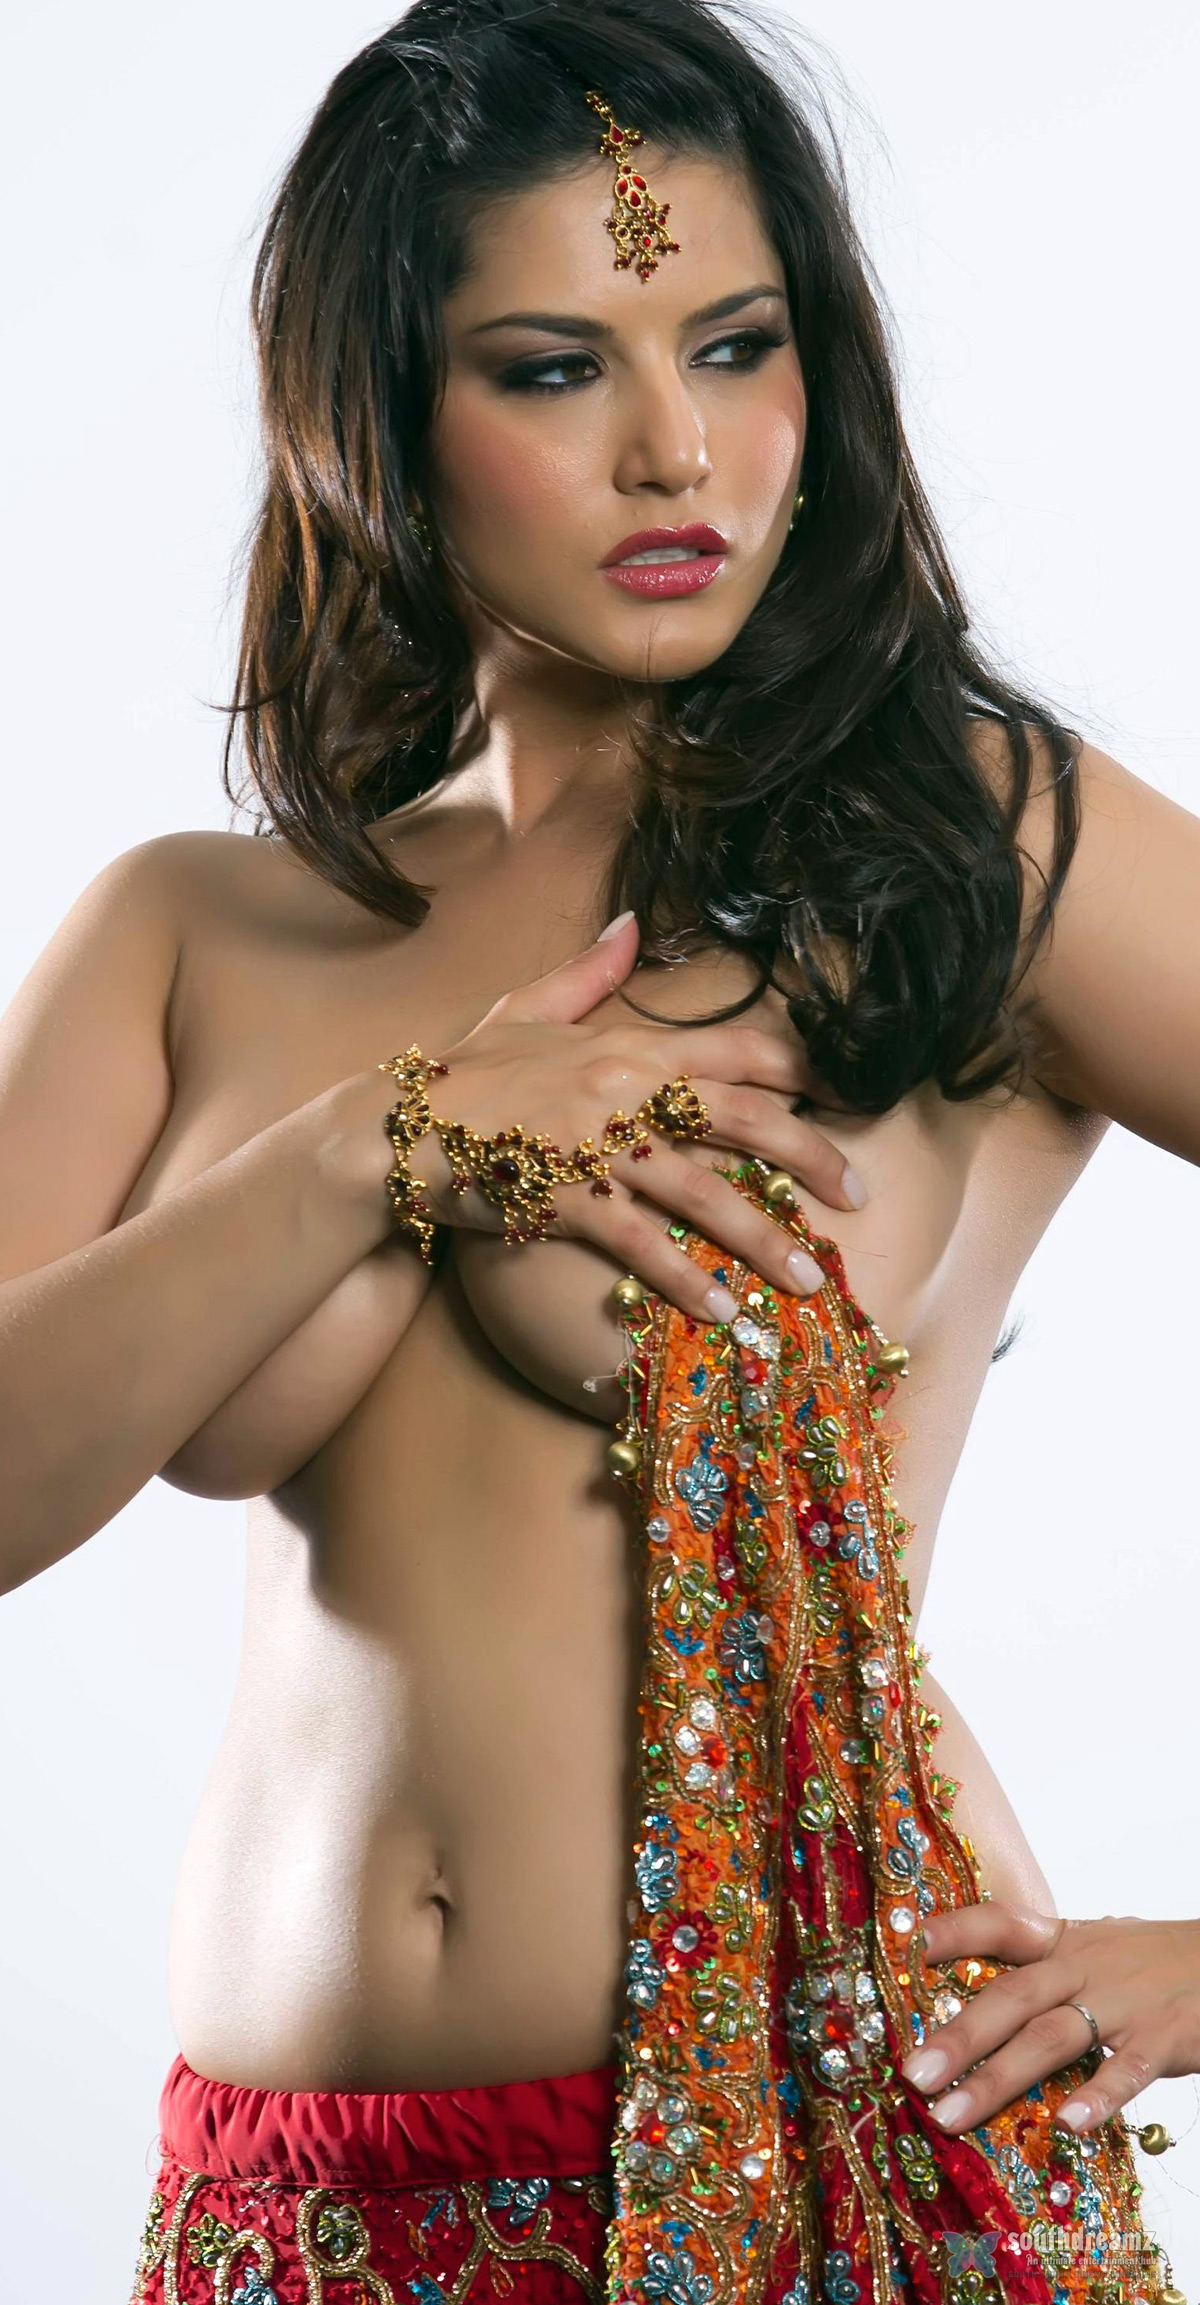 girls-semi-nude-indian-women